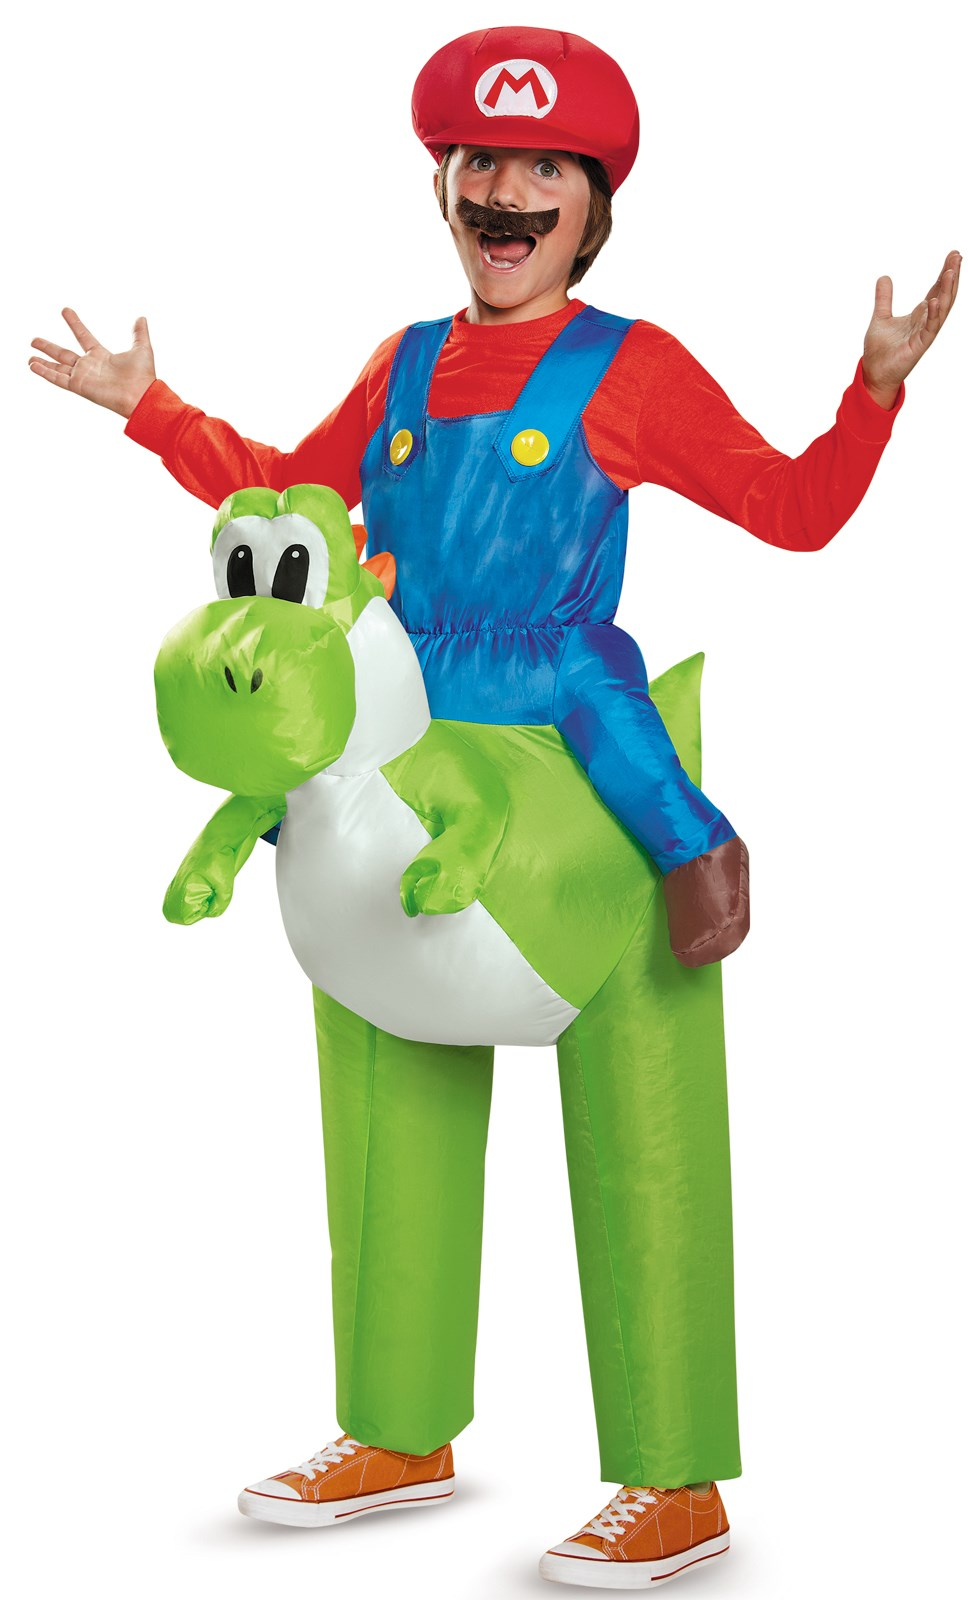 super mario bros ride a yoshi inflatable child costume - Koopa Troopa Halloween Costume